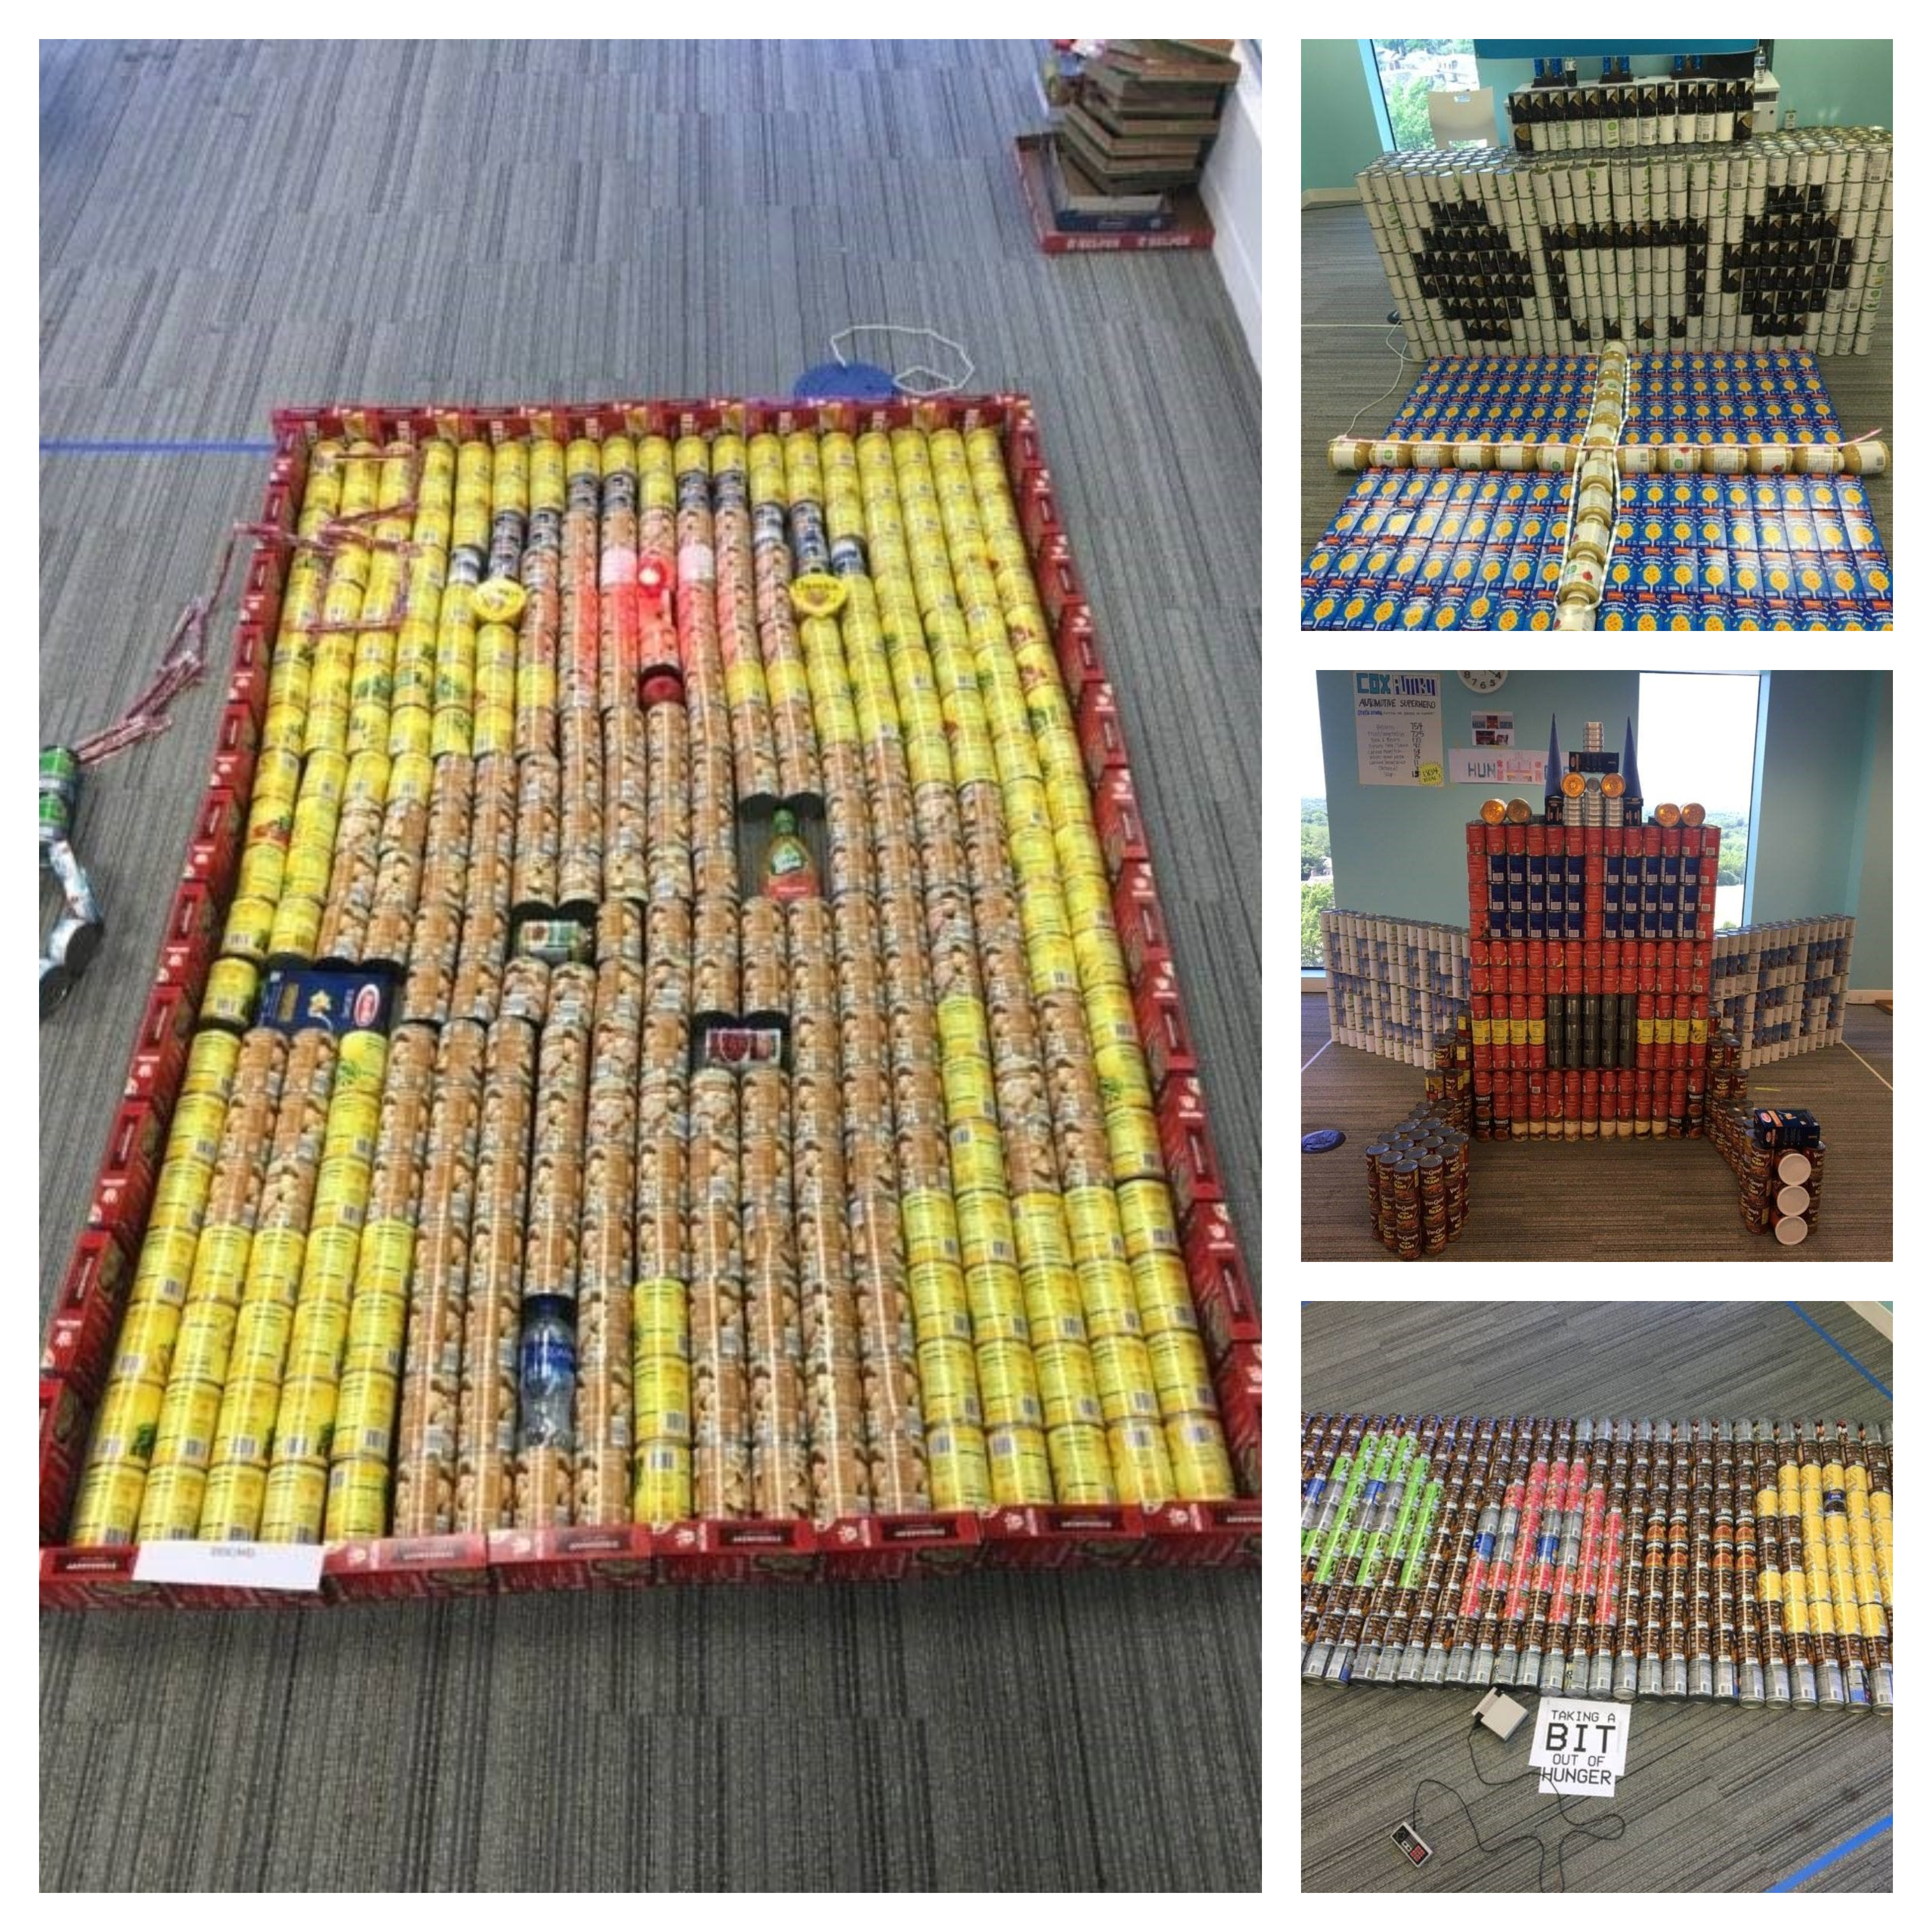 Canstruction-collage-(1).jpg